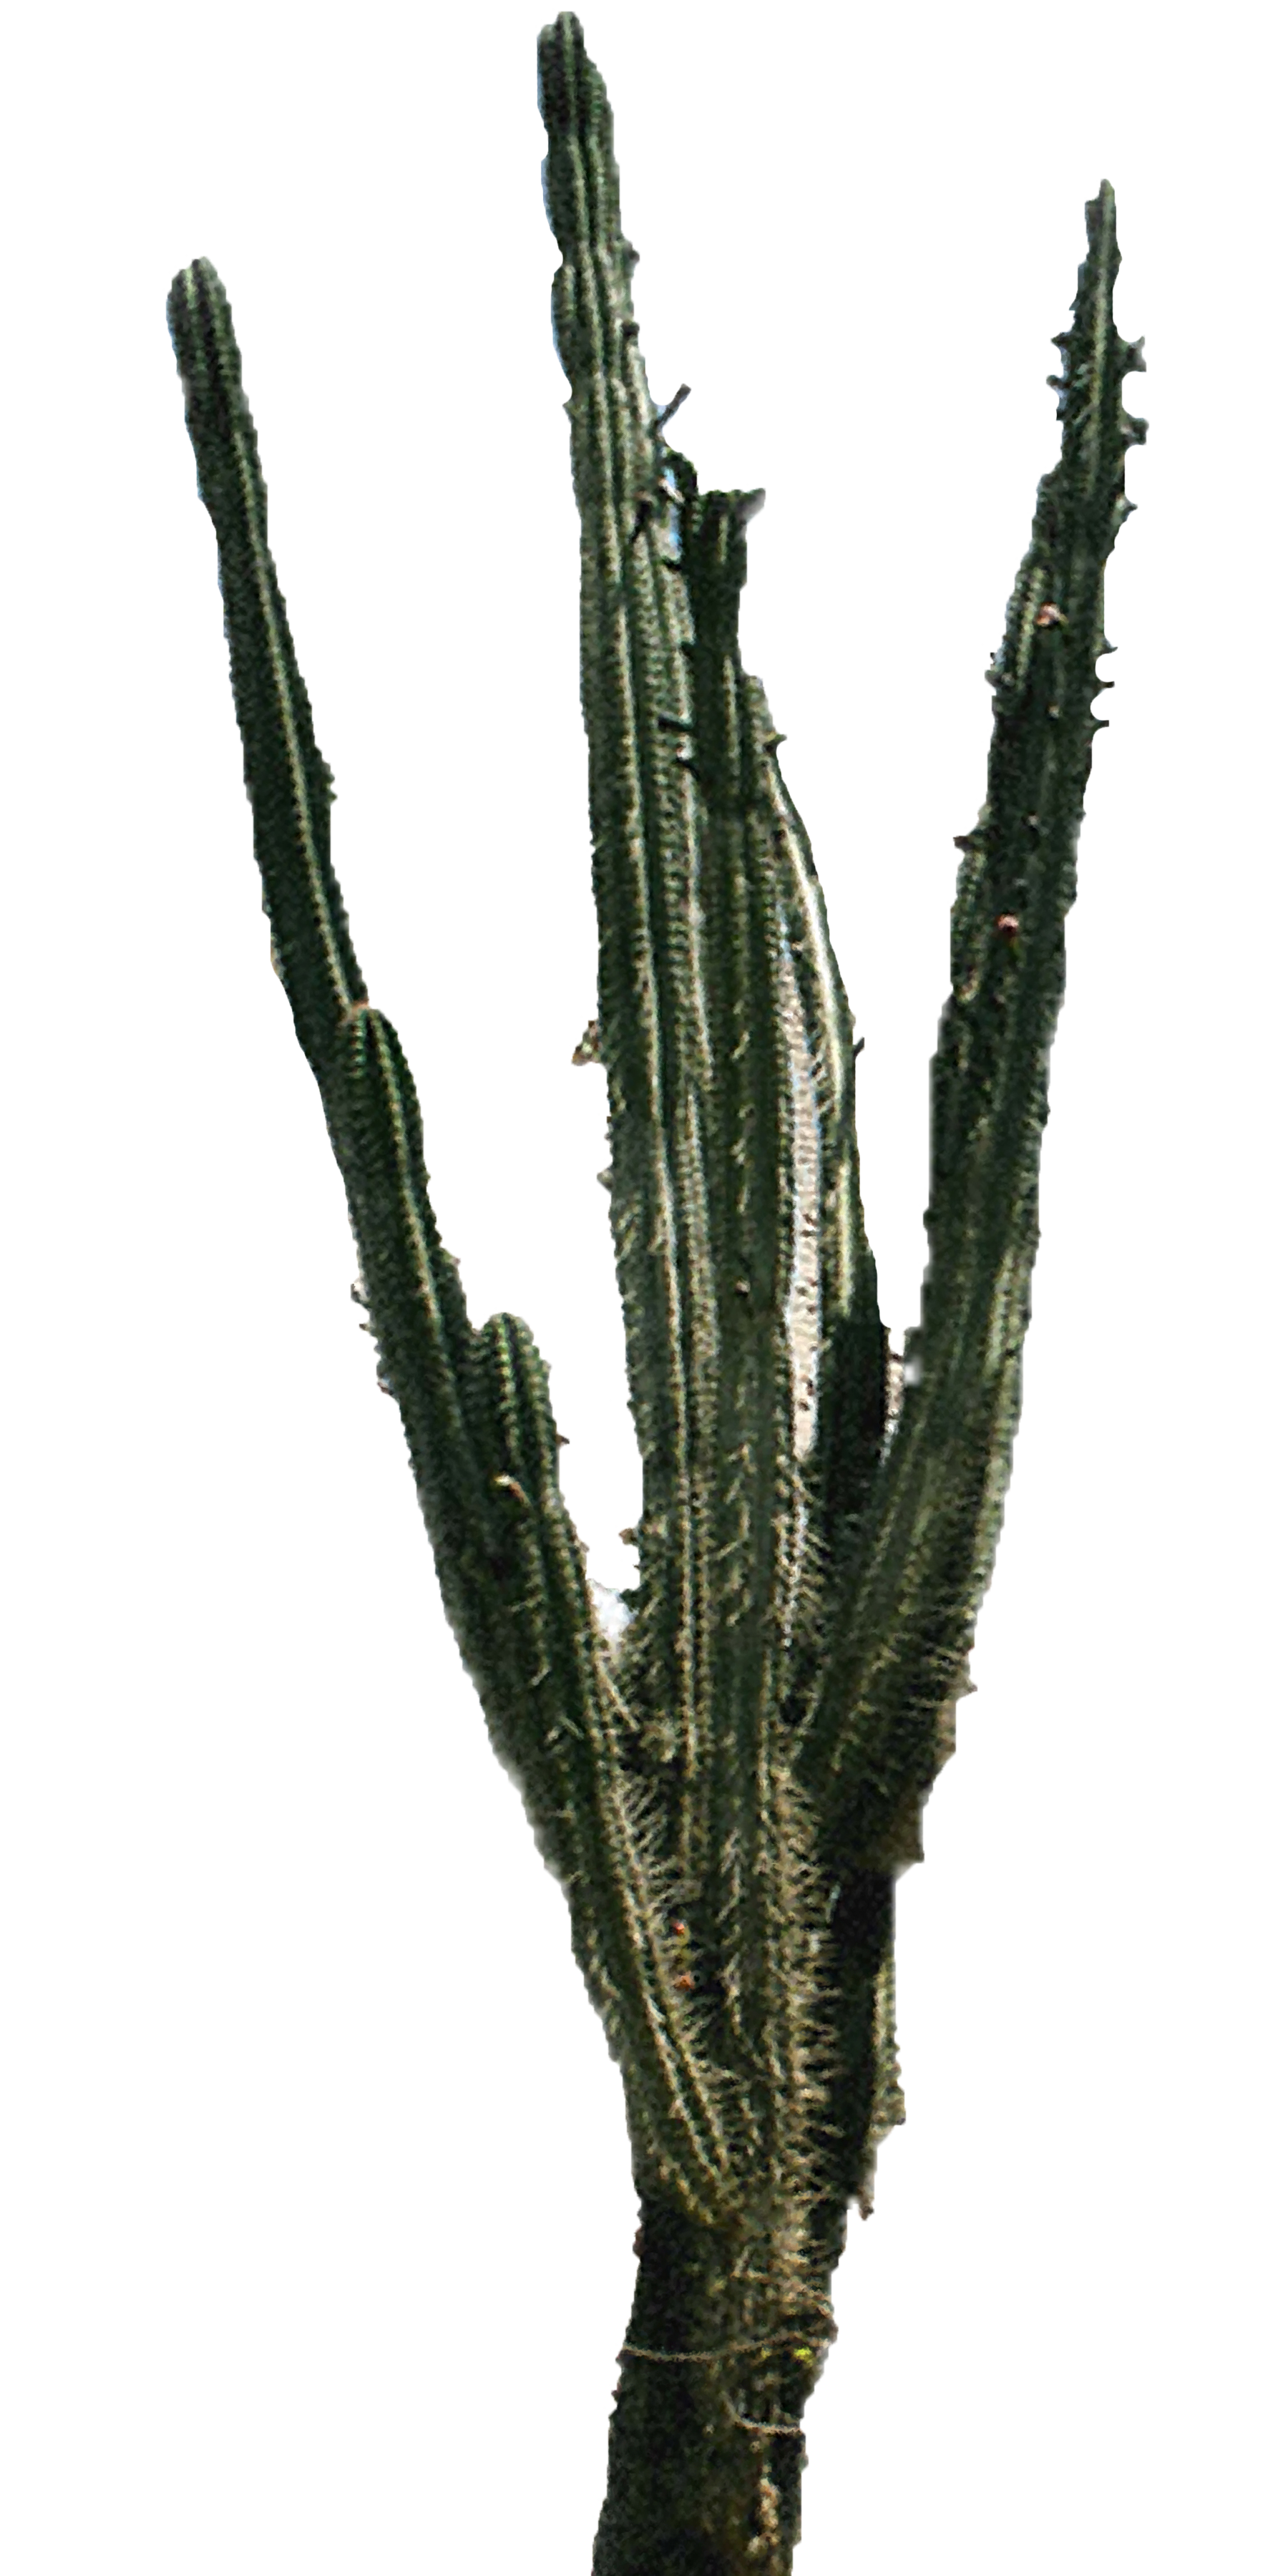 Cactus png. Download free high quality